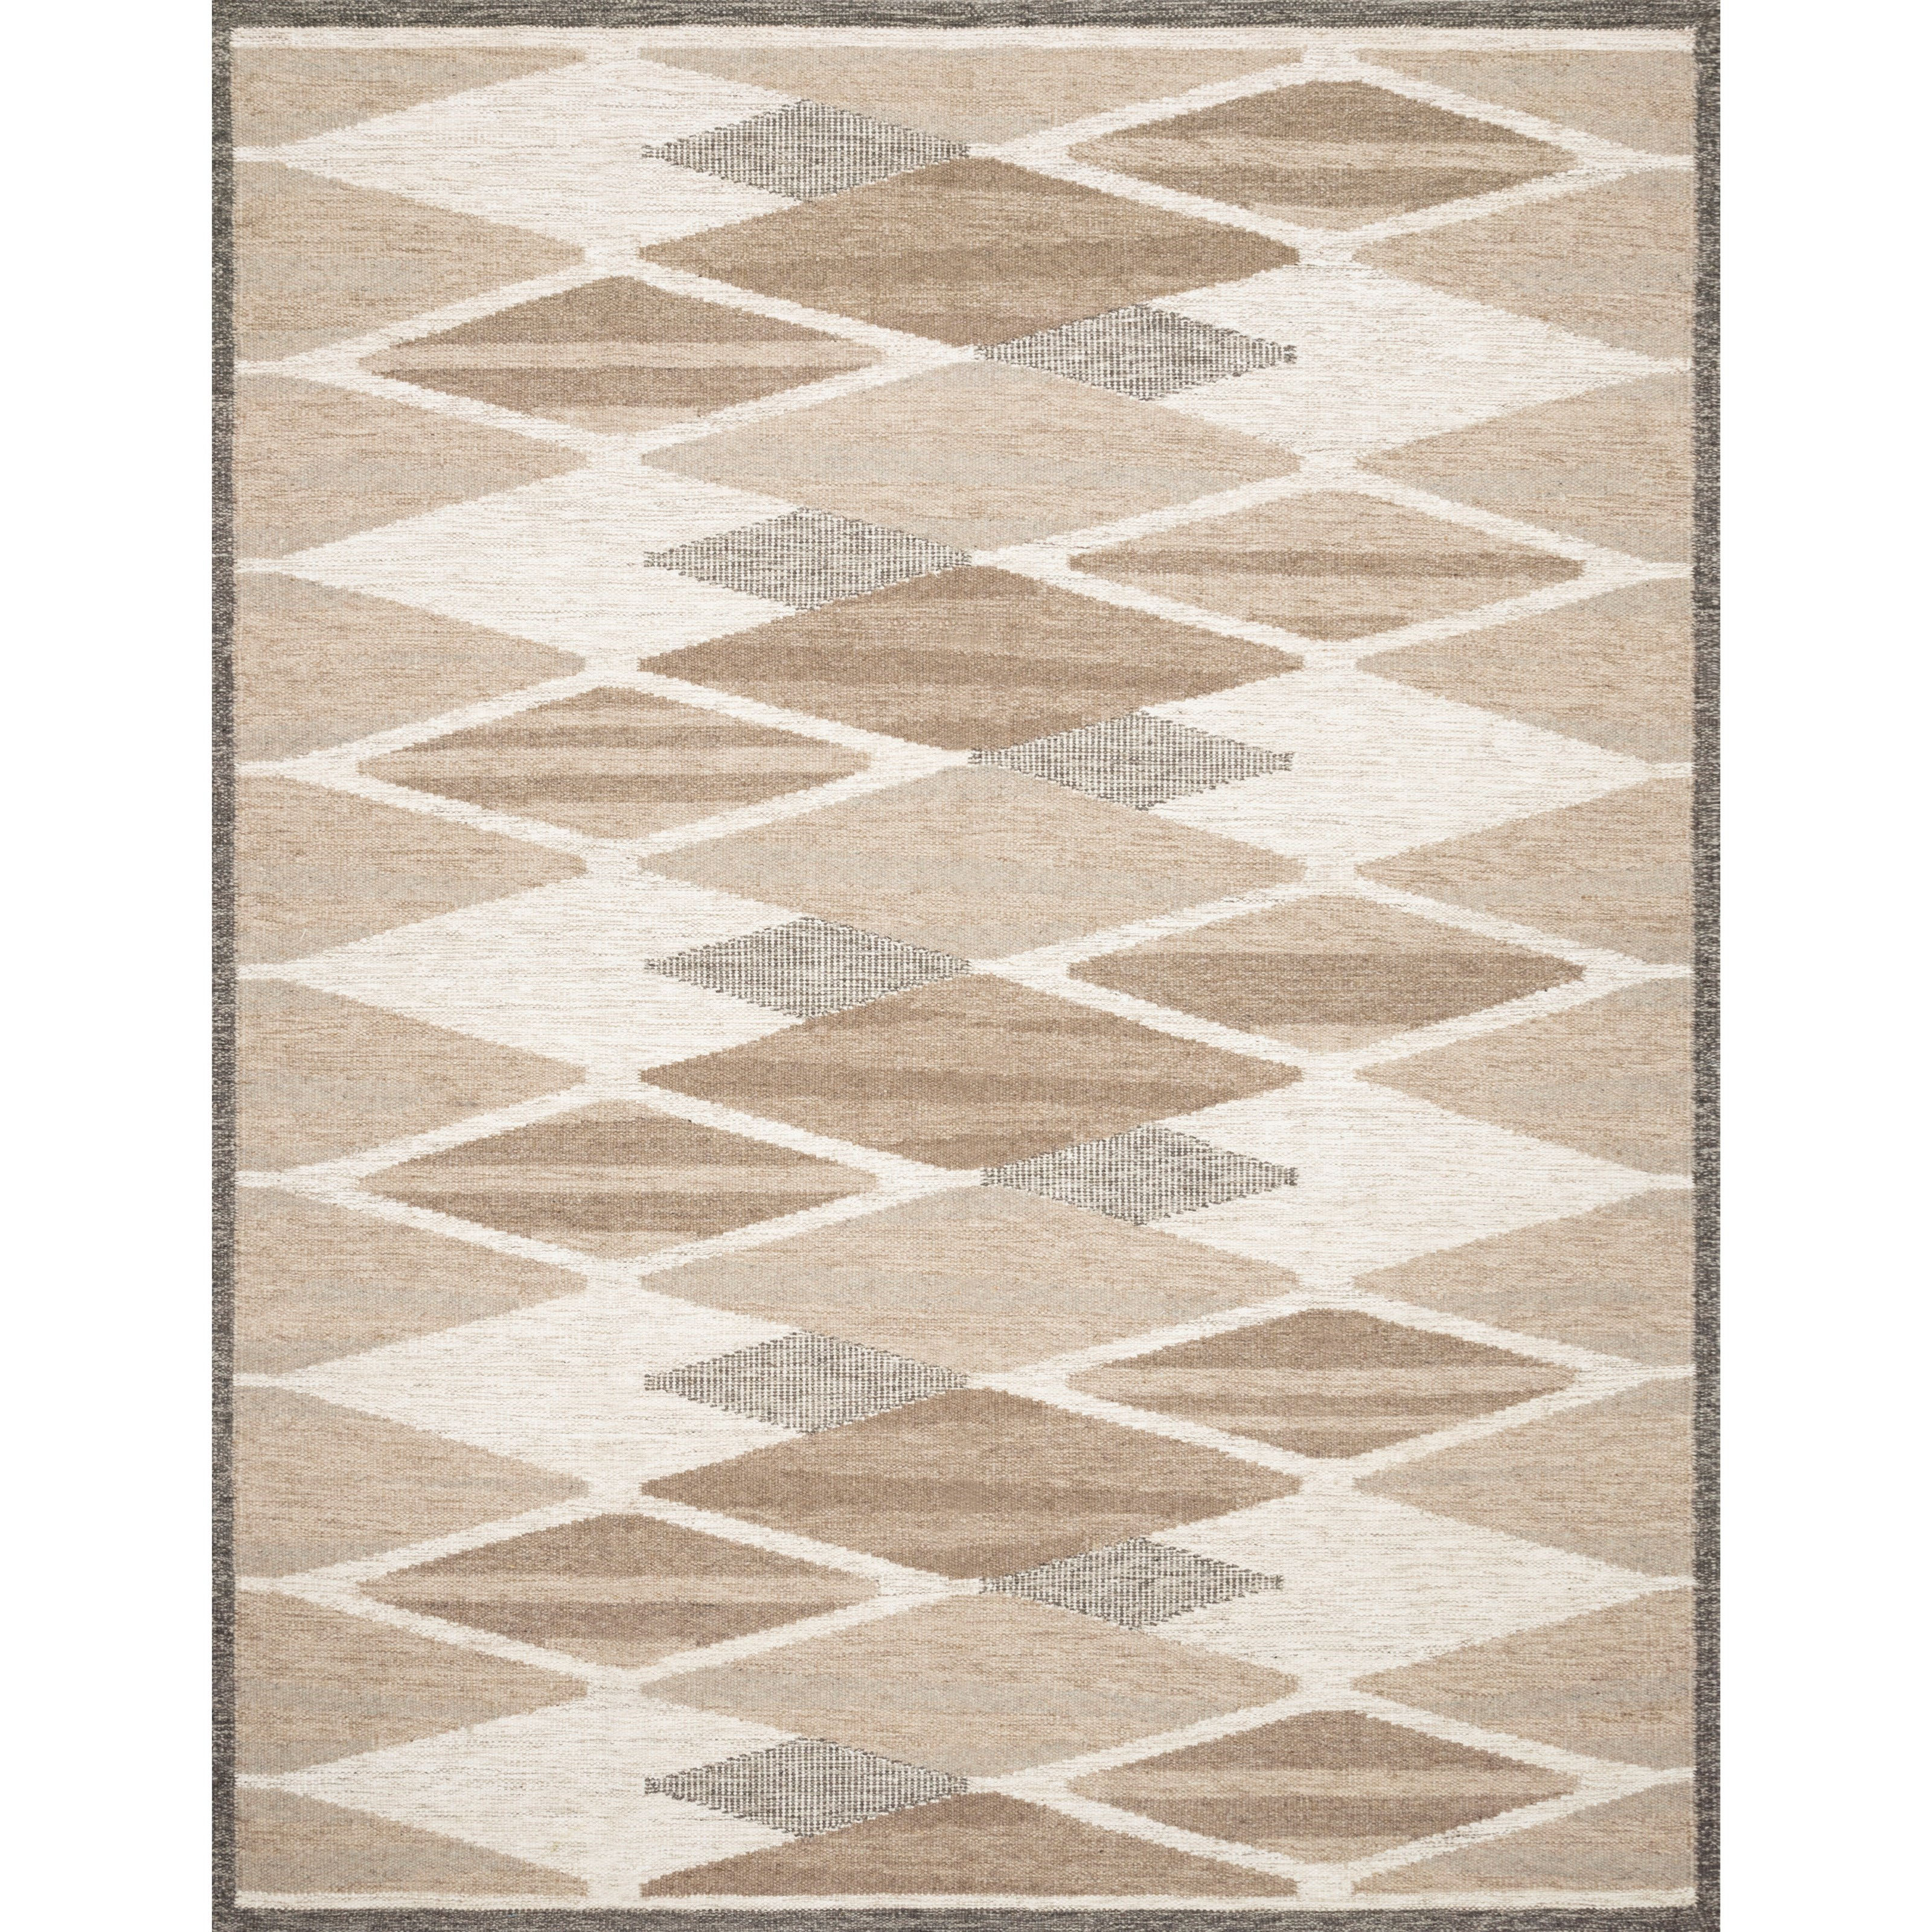 "Evelina 7'9"" x 9'9"" Taupe / Bark Rug by Loloi Rugs at Sprintz Furniture"